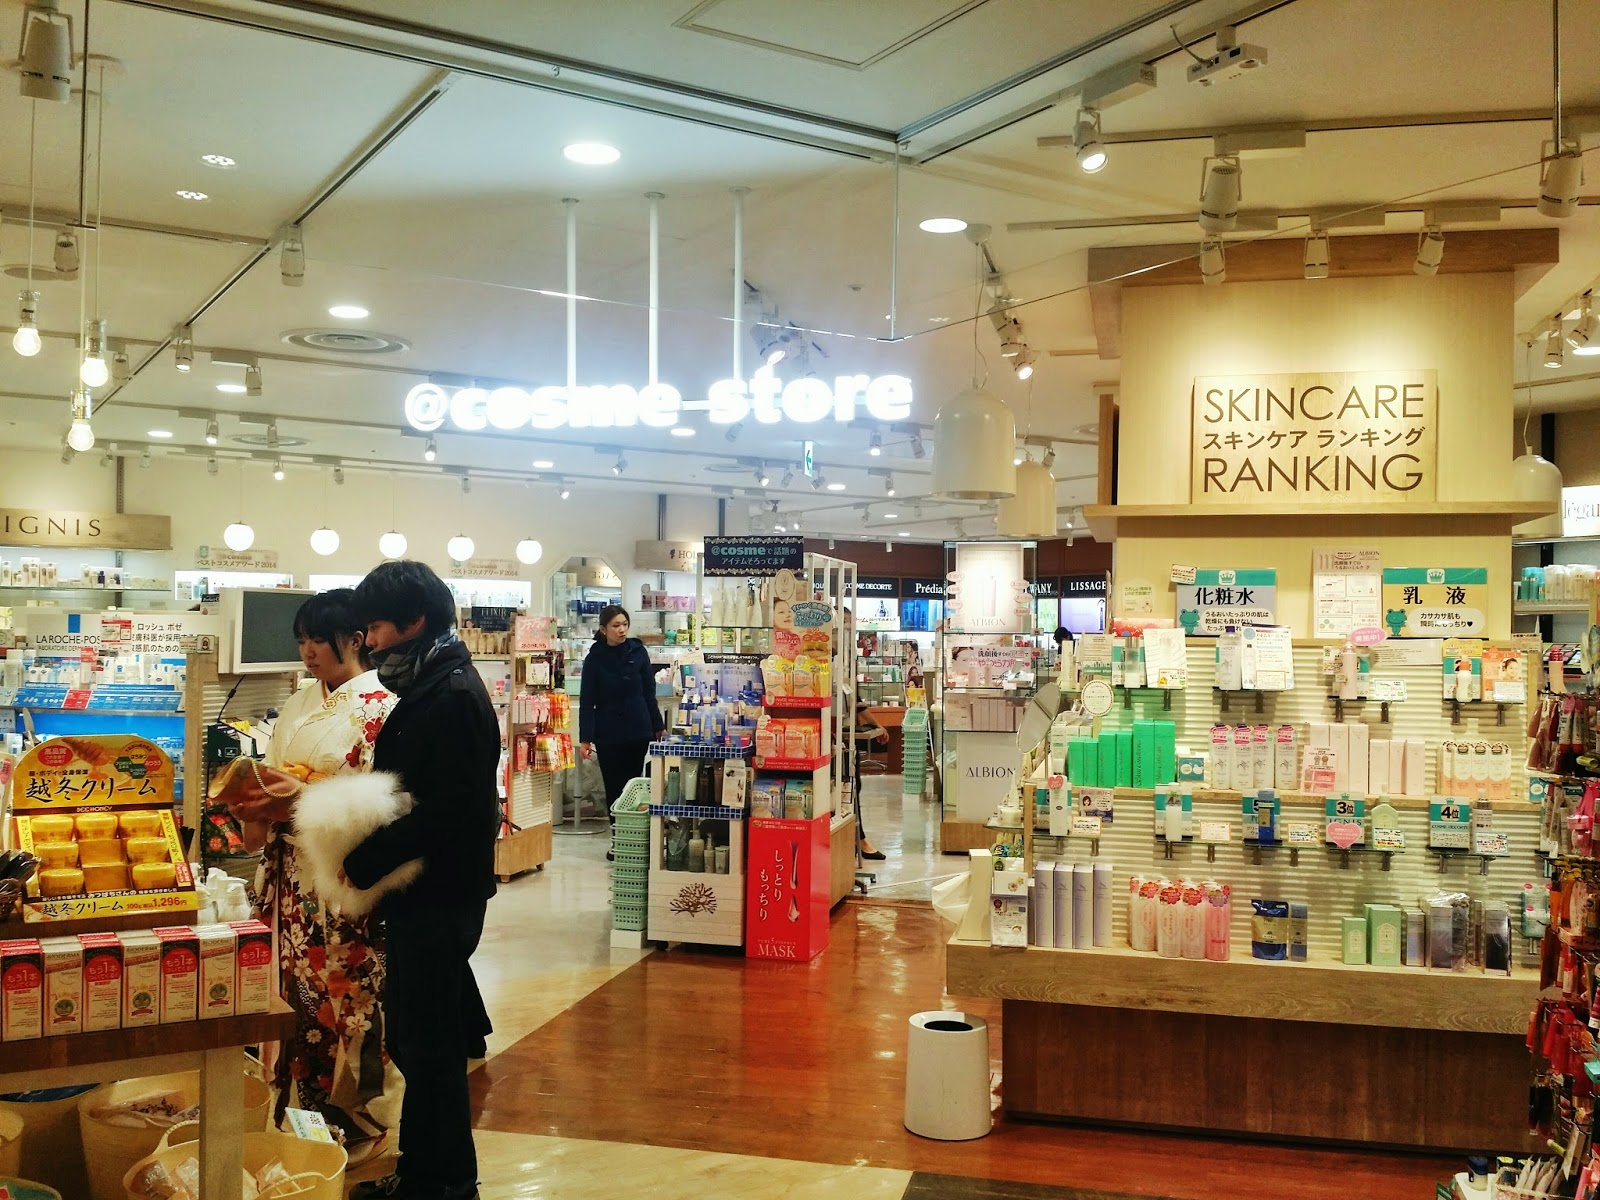 2FeetWorth: Shopping in Japan - Drugstore Products Part 1